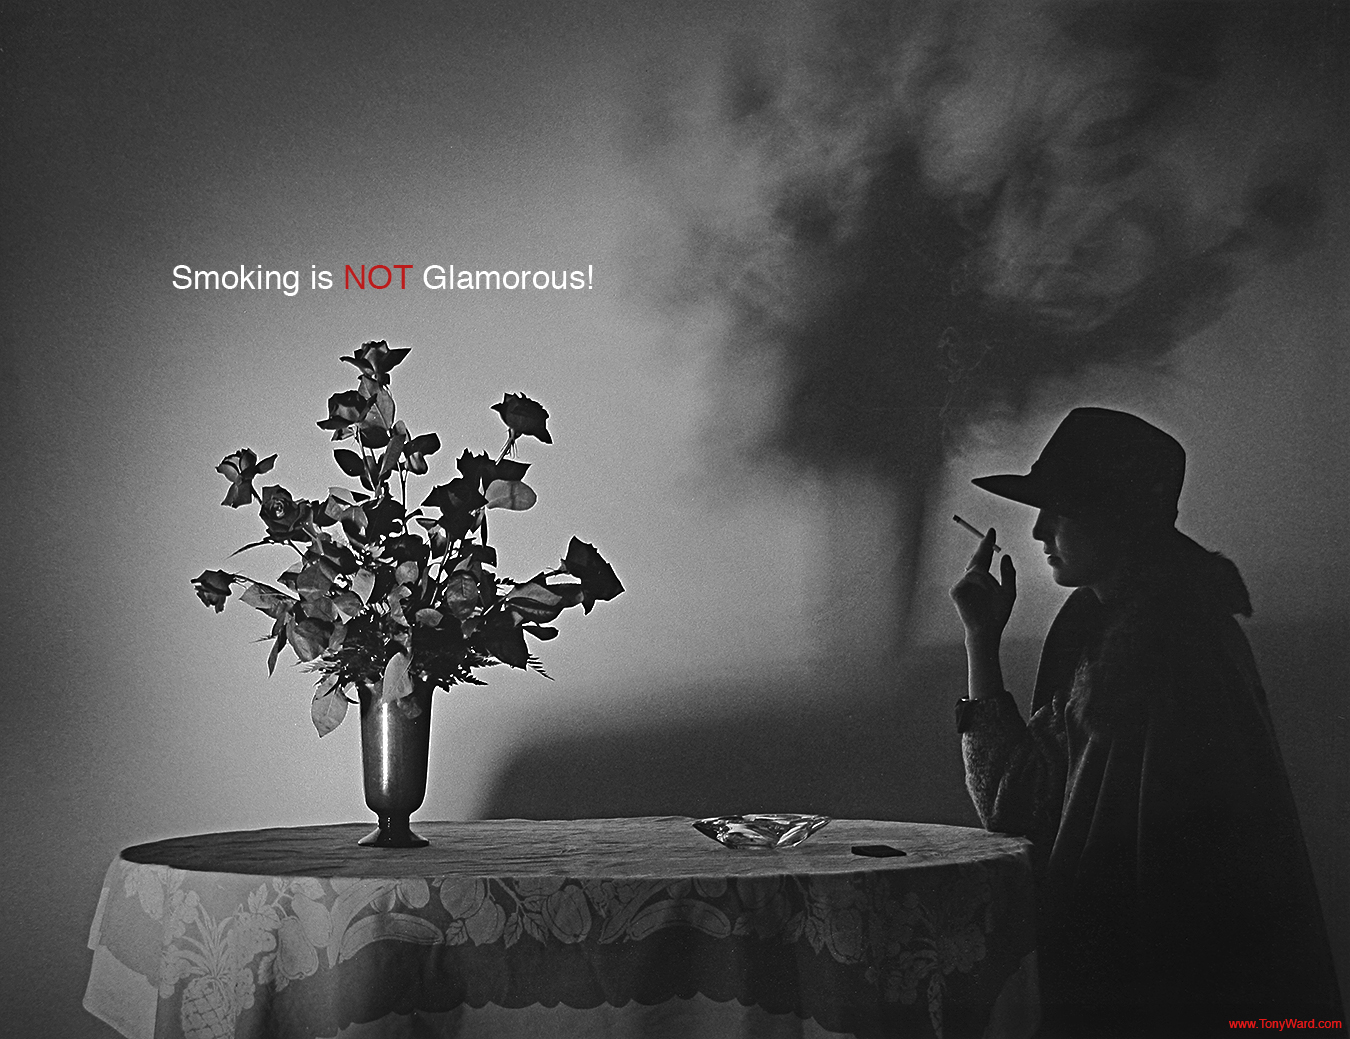 Tony_Ward_Studio_PSA-SMOKING-IS-NOT-GLAMOROUS